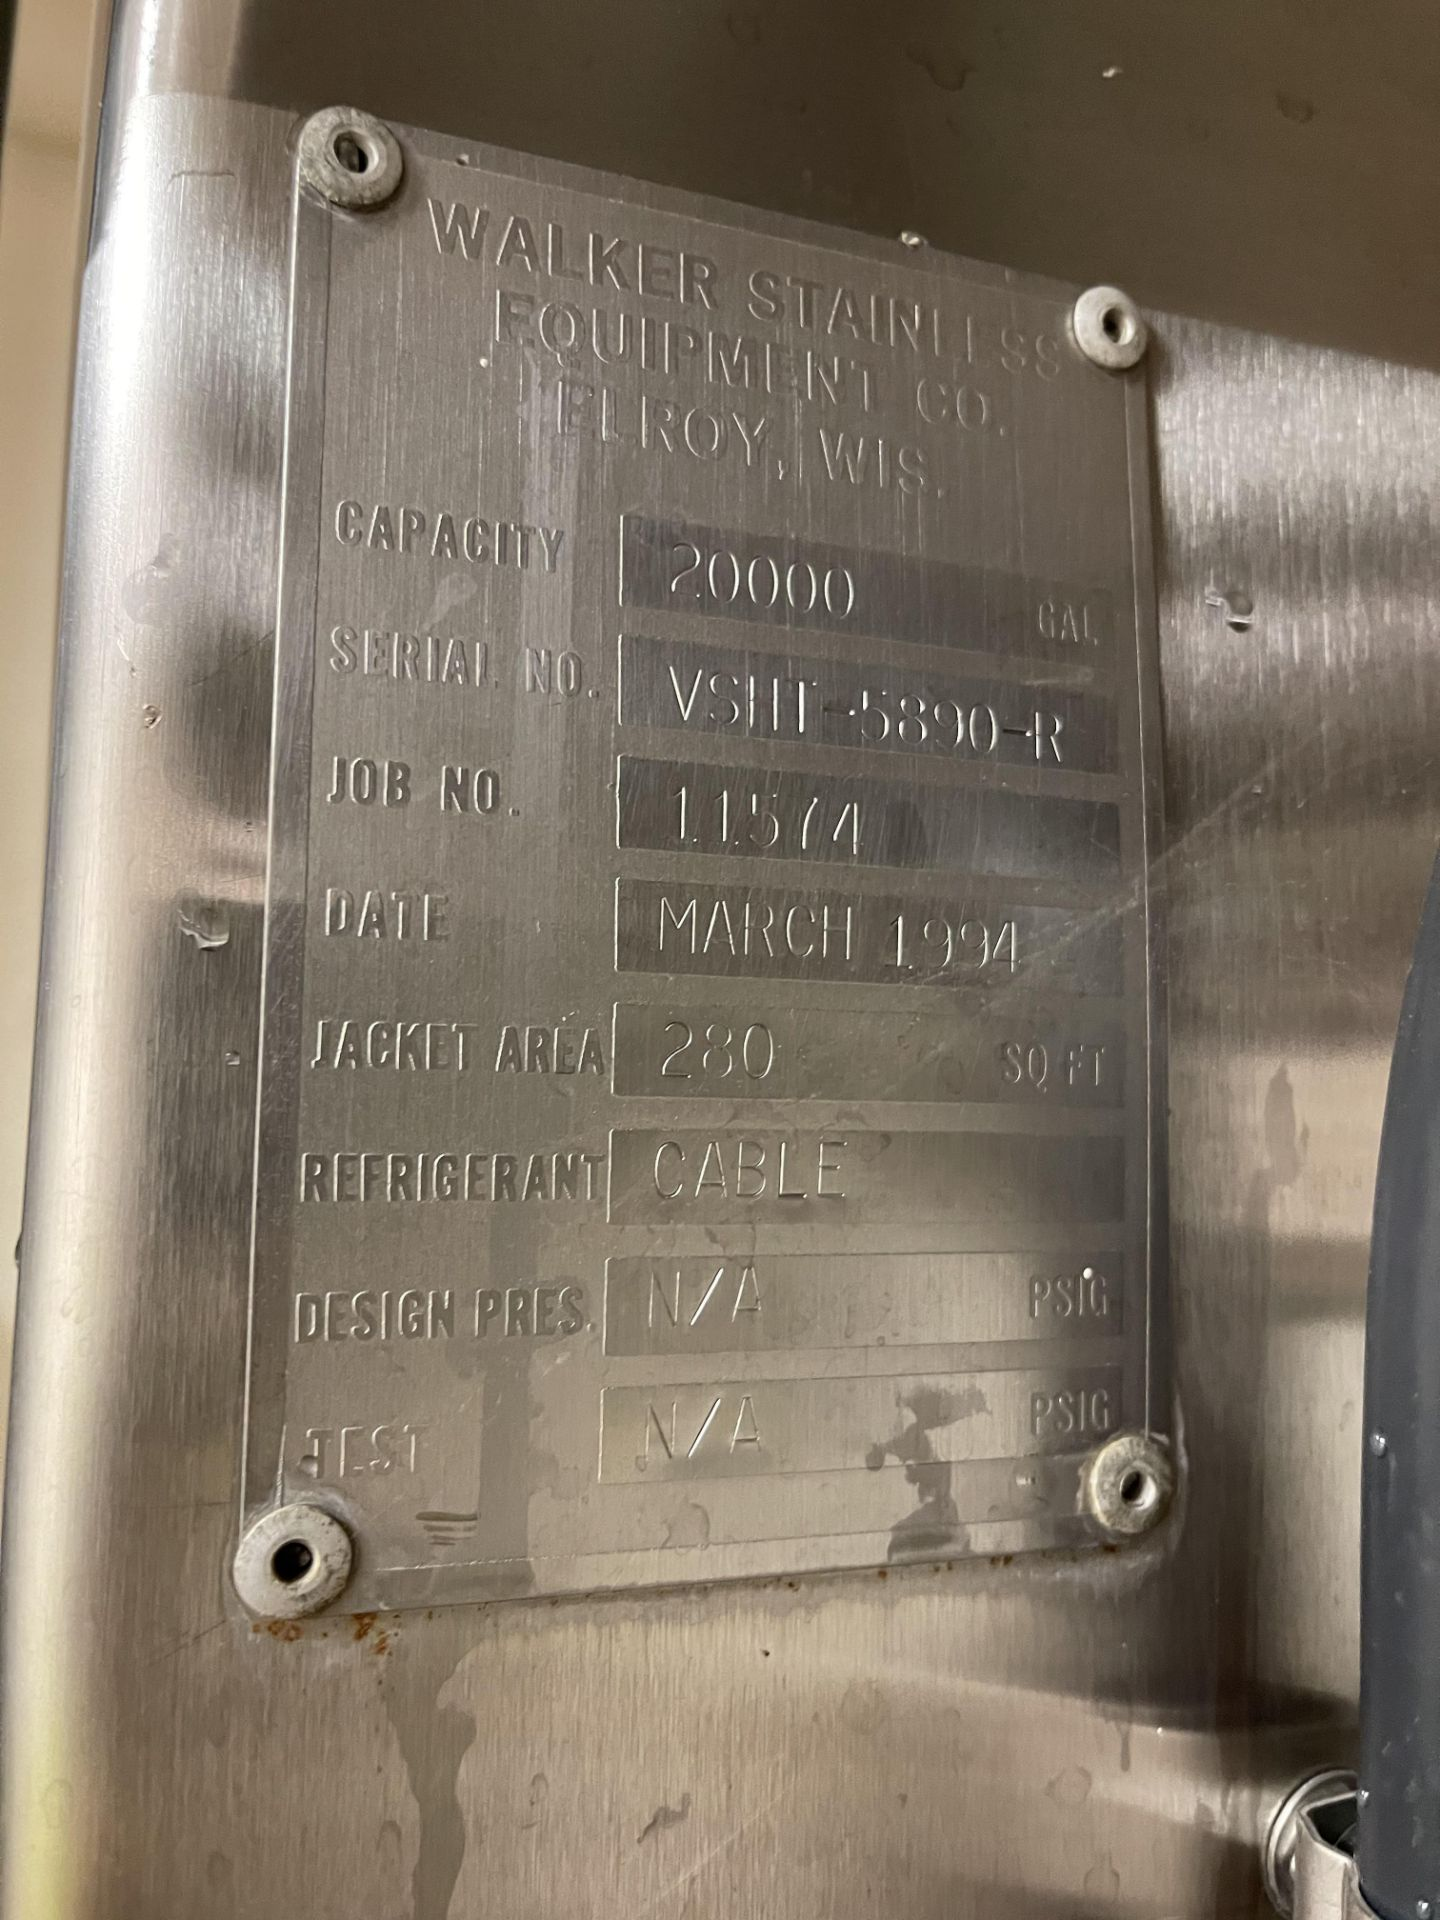 Walker 20,000 Gallon Stainless Steel Jacketed Silo - Image 5 of 5